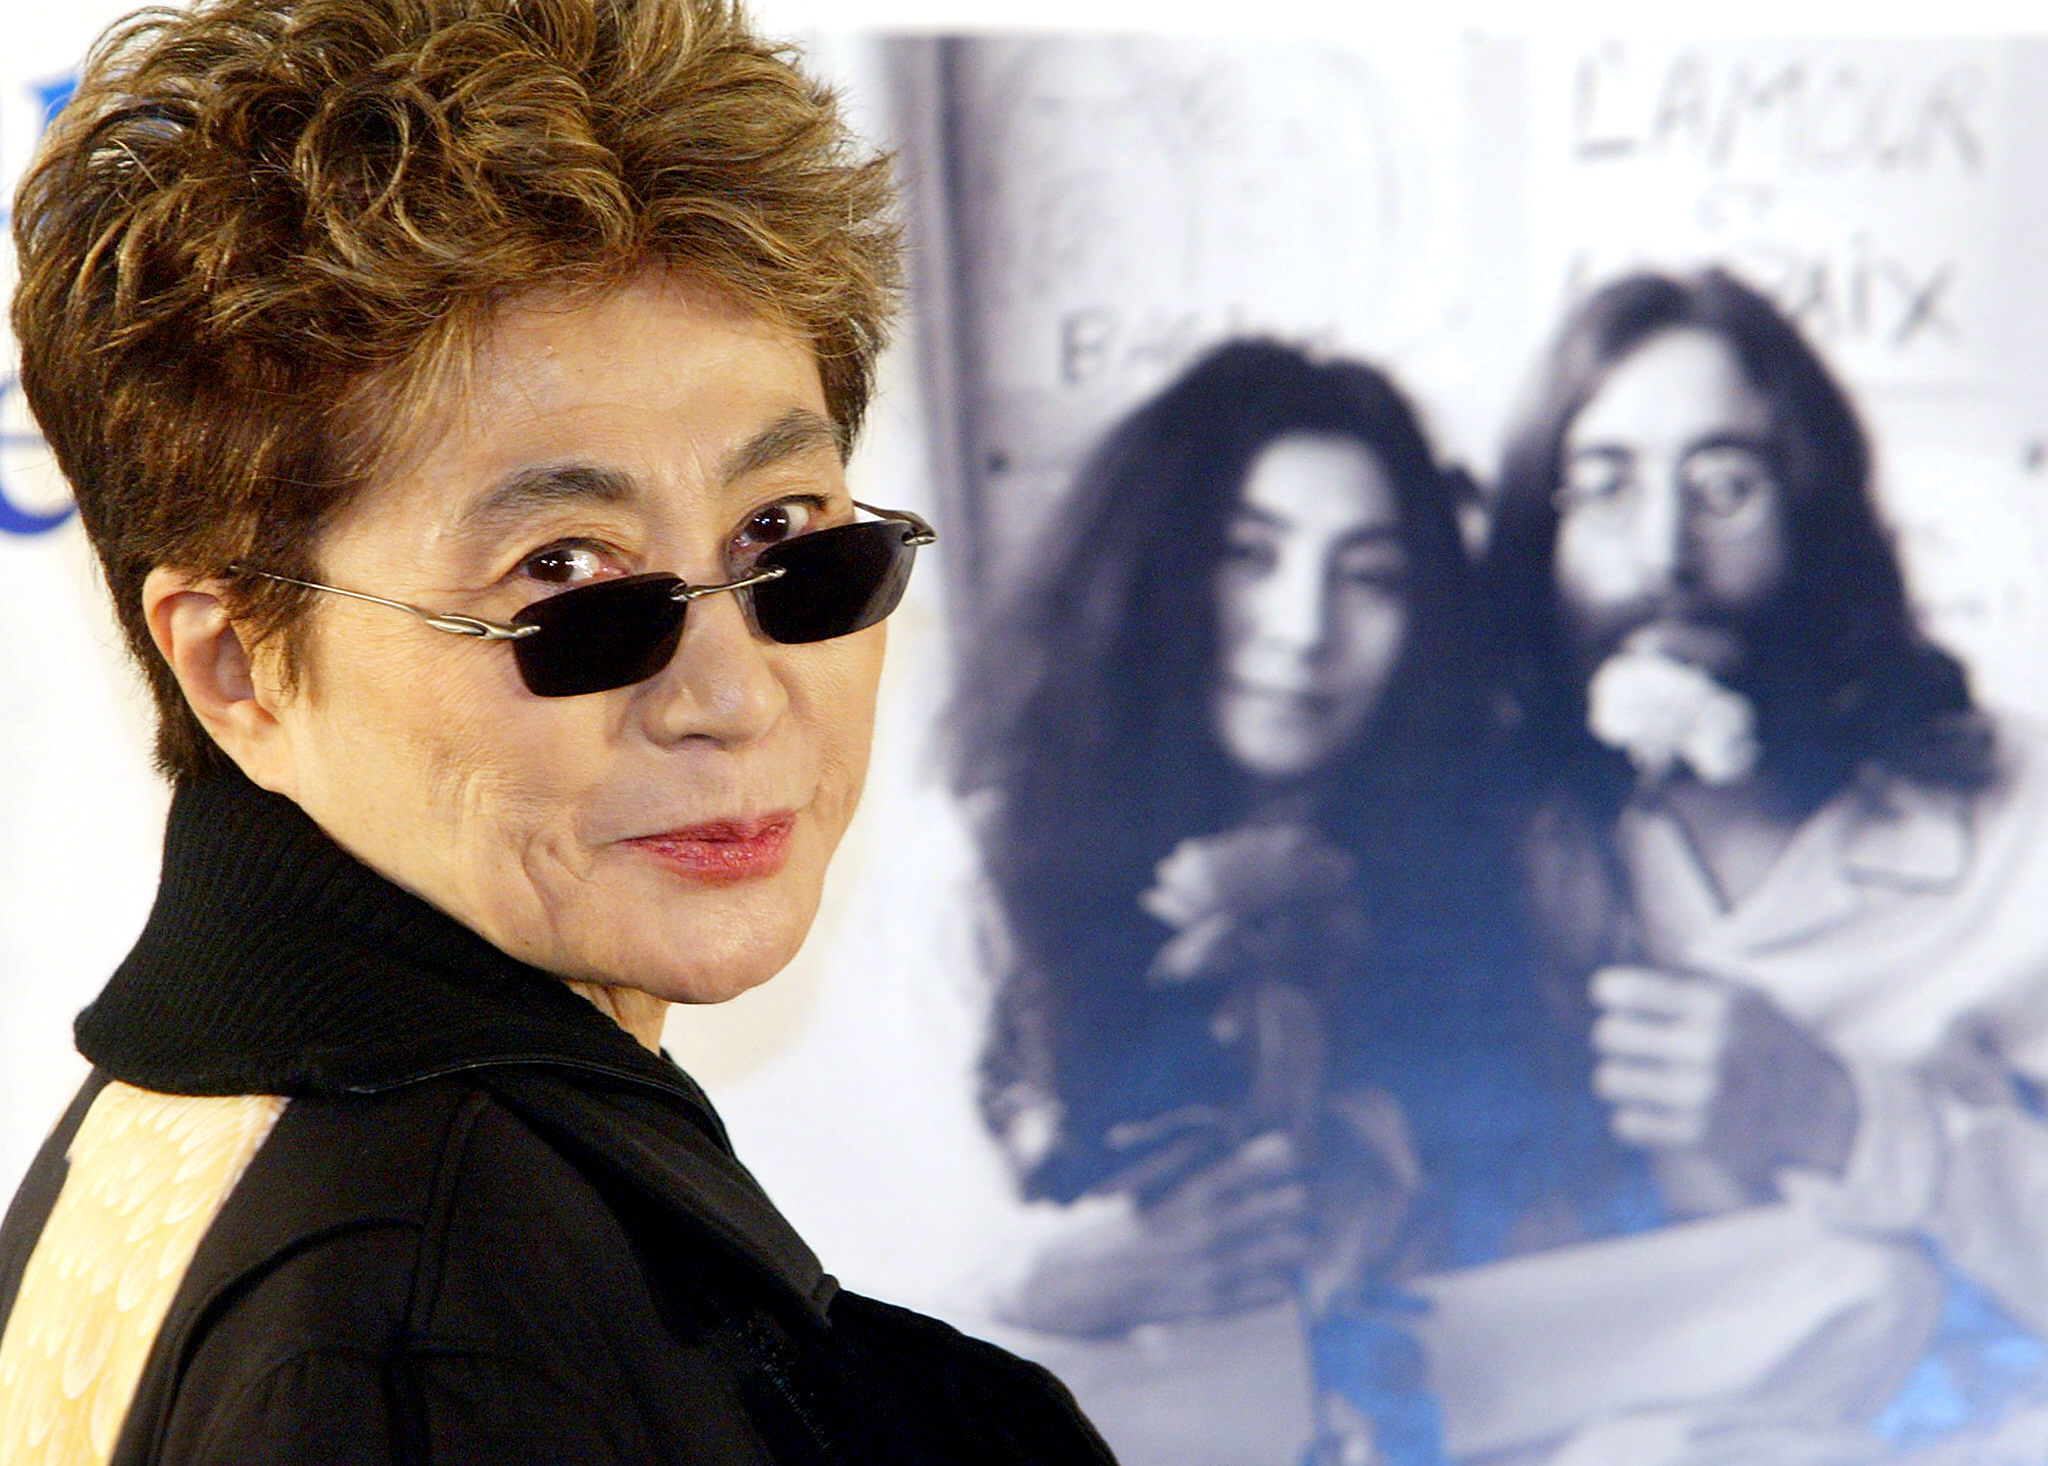 Yoko Ono Set To Receive Credit With John Lennon As Songwriter Of